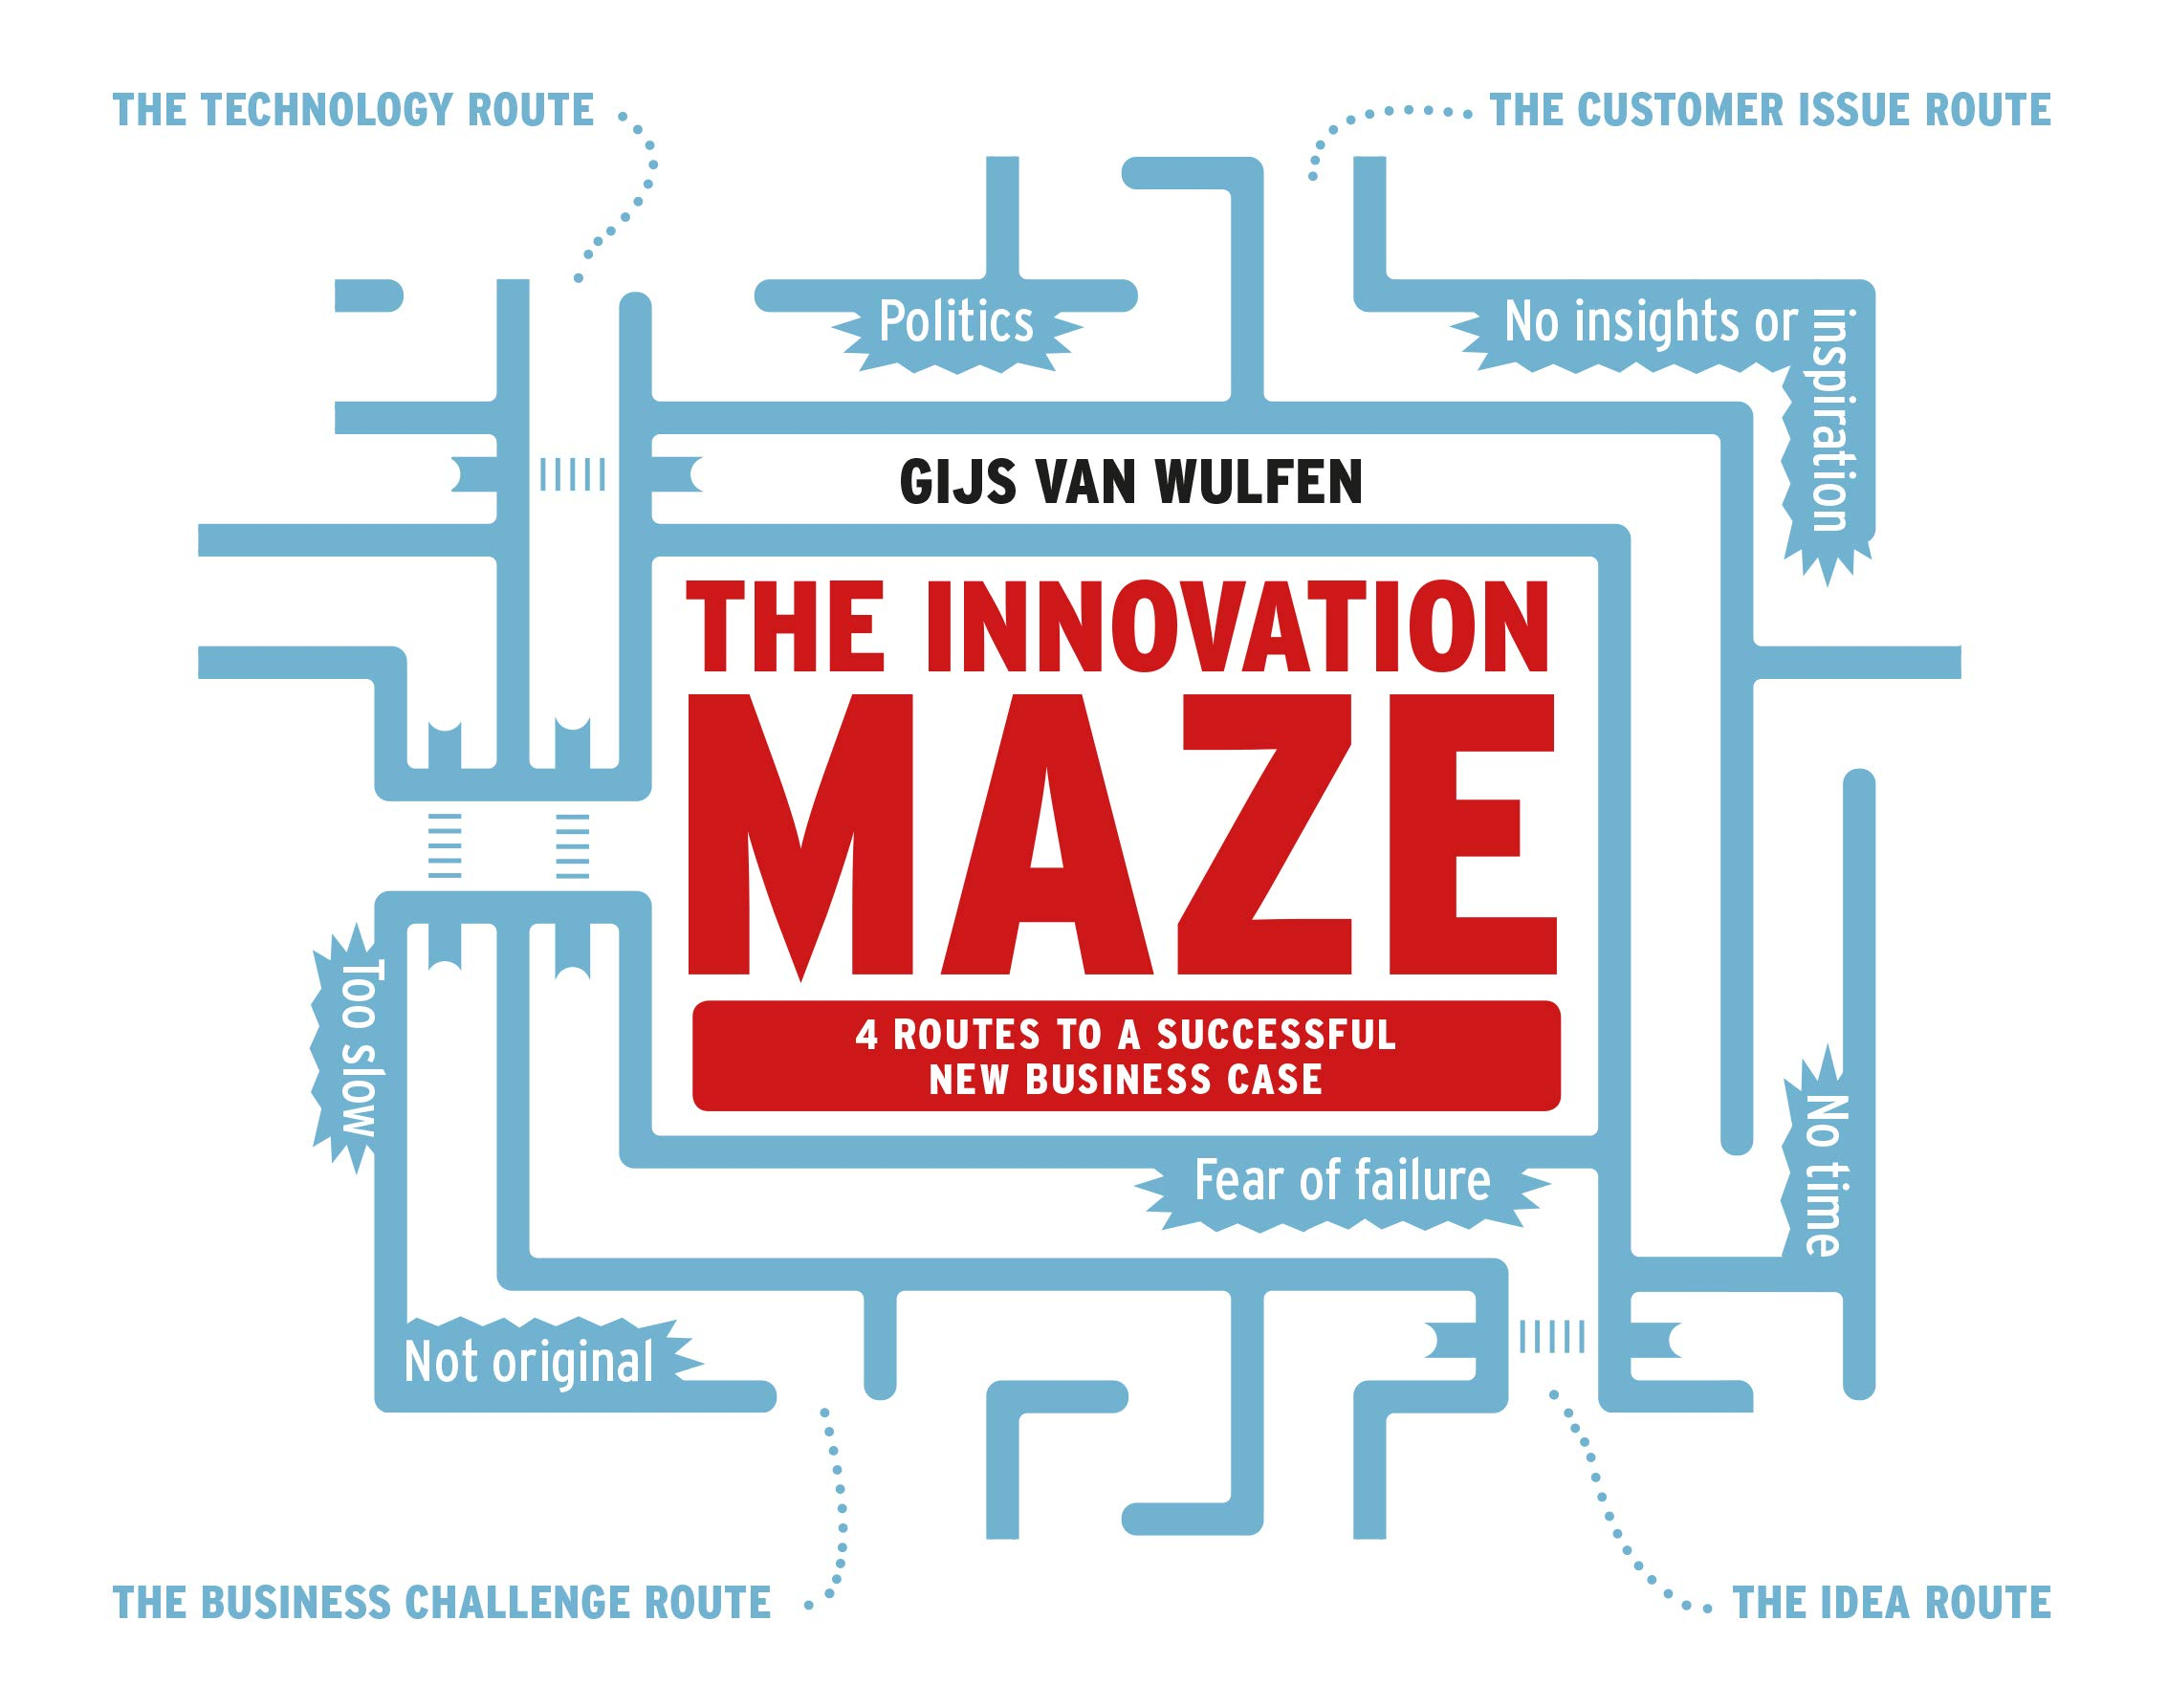 The Innovation Maze: Four Routes to a Successful New Business Case